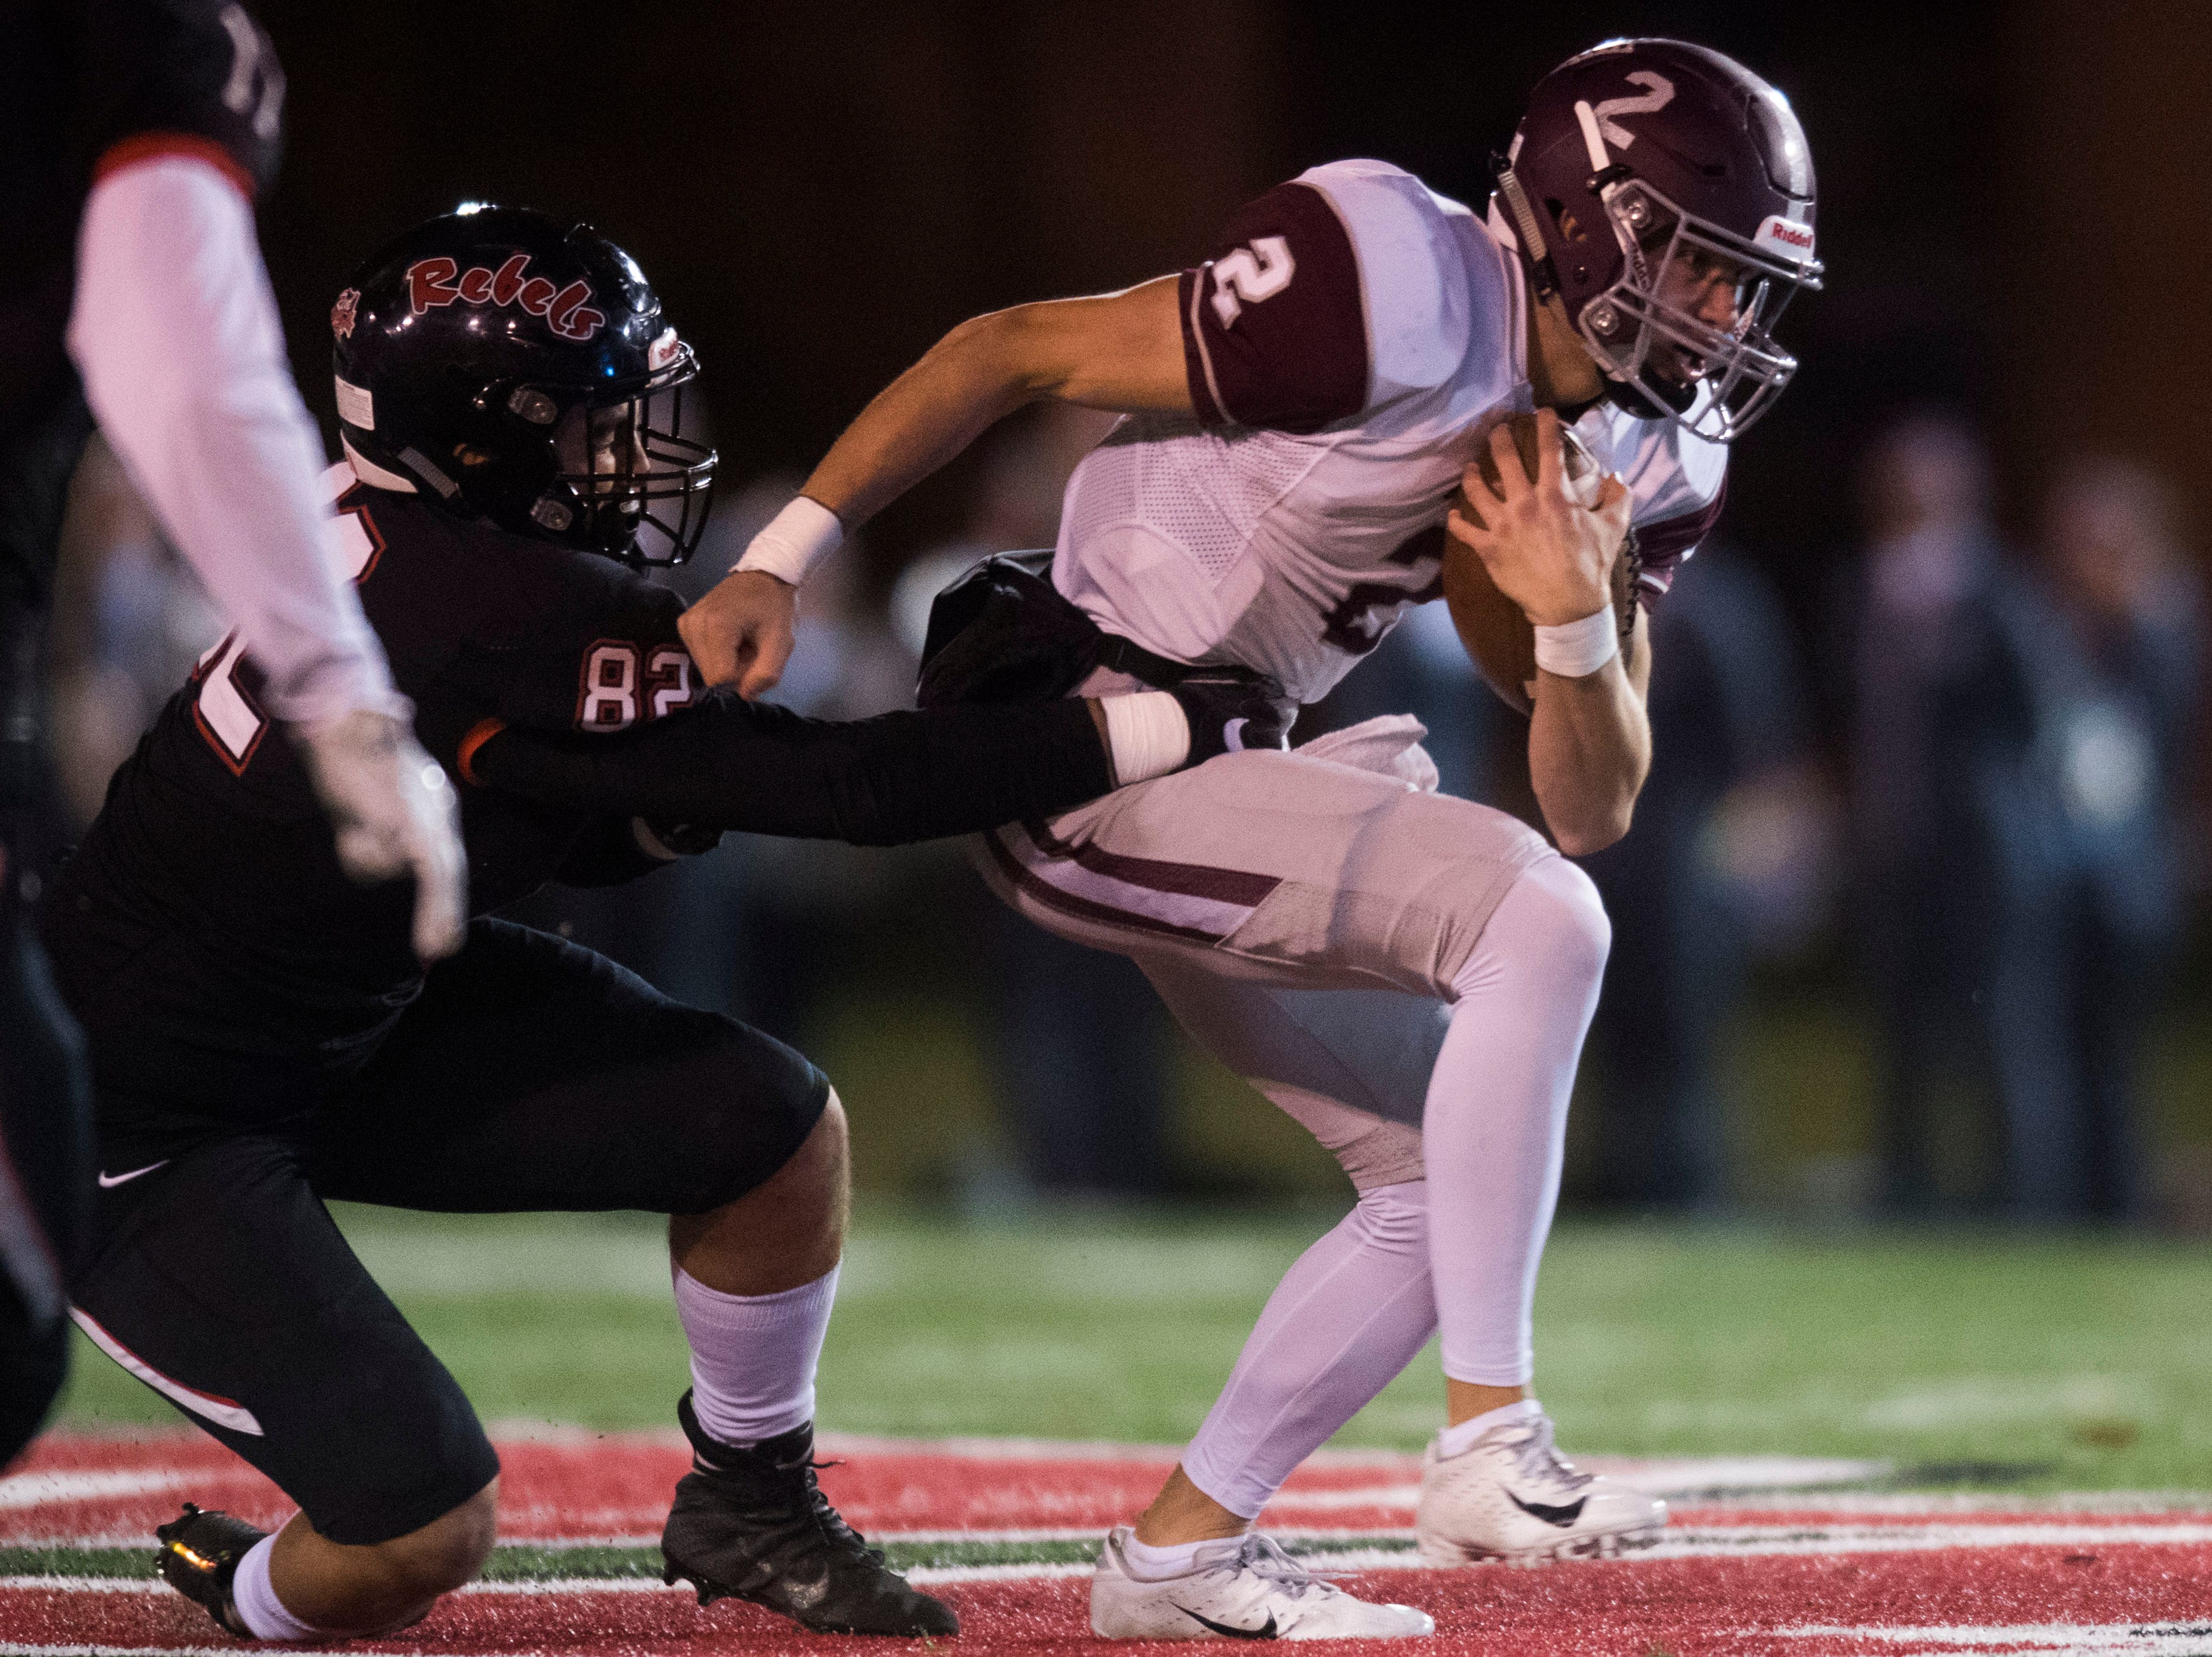 Bearden's Collin Ironside (2) runs the ball during a first round playoff game between Maryville and Bearden at Maryville, Friday, Nov. 2, 2018. Maryville defeated Bearden 28-7.